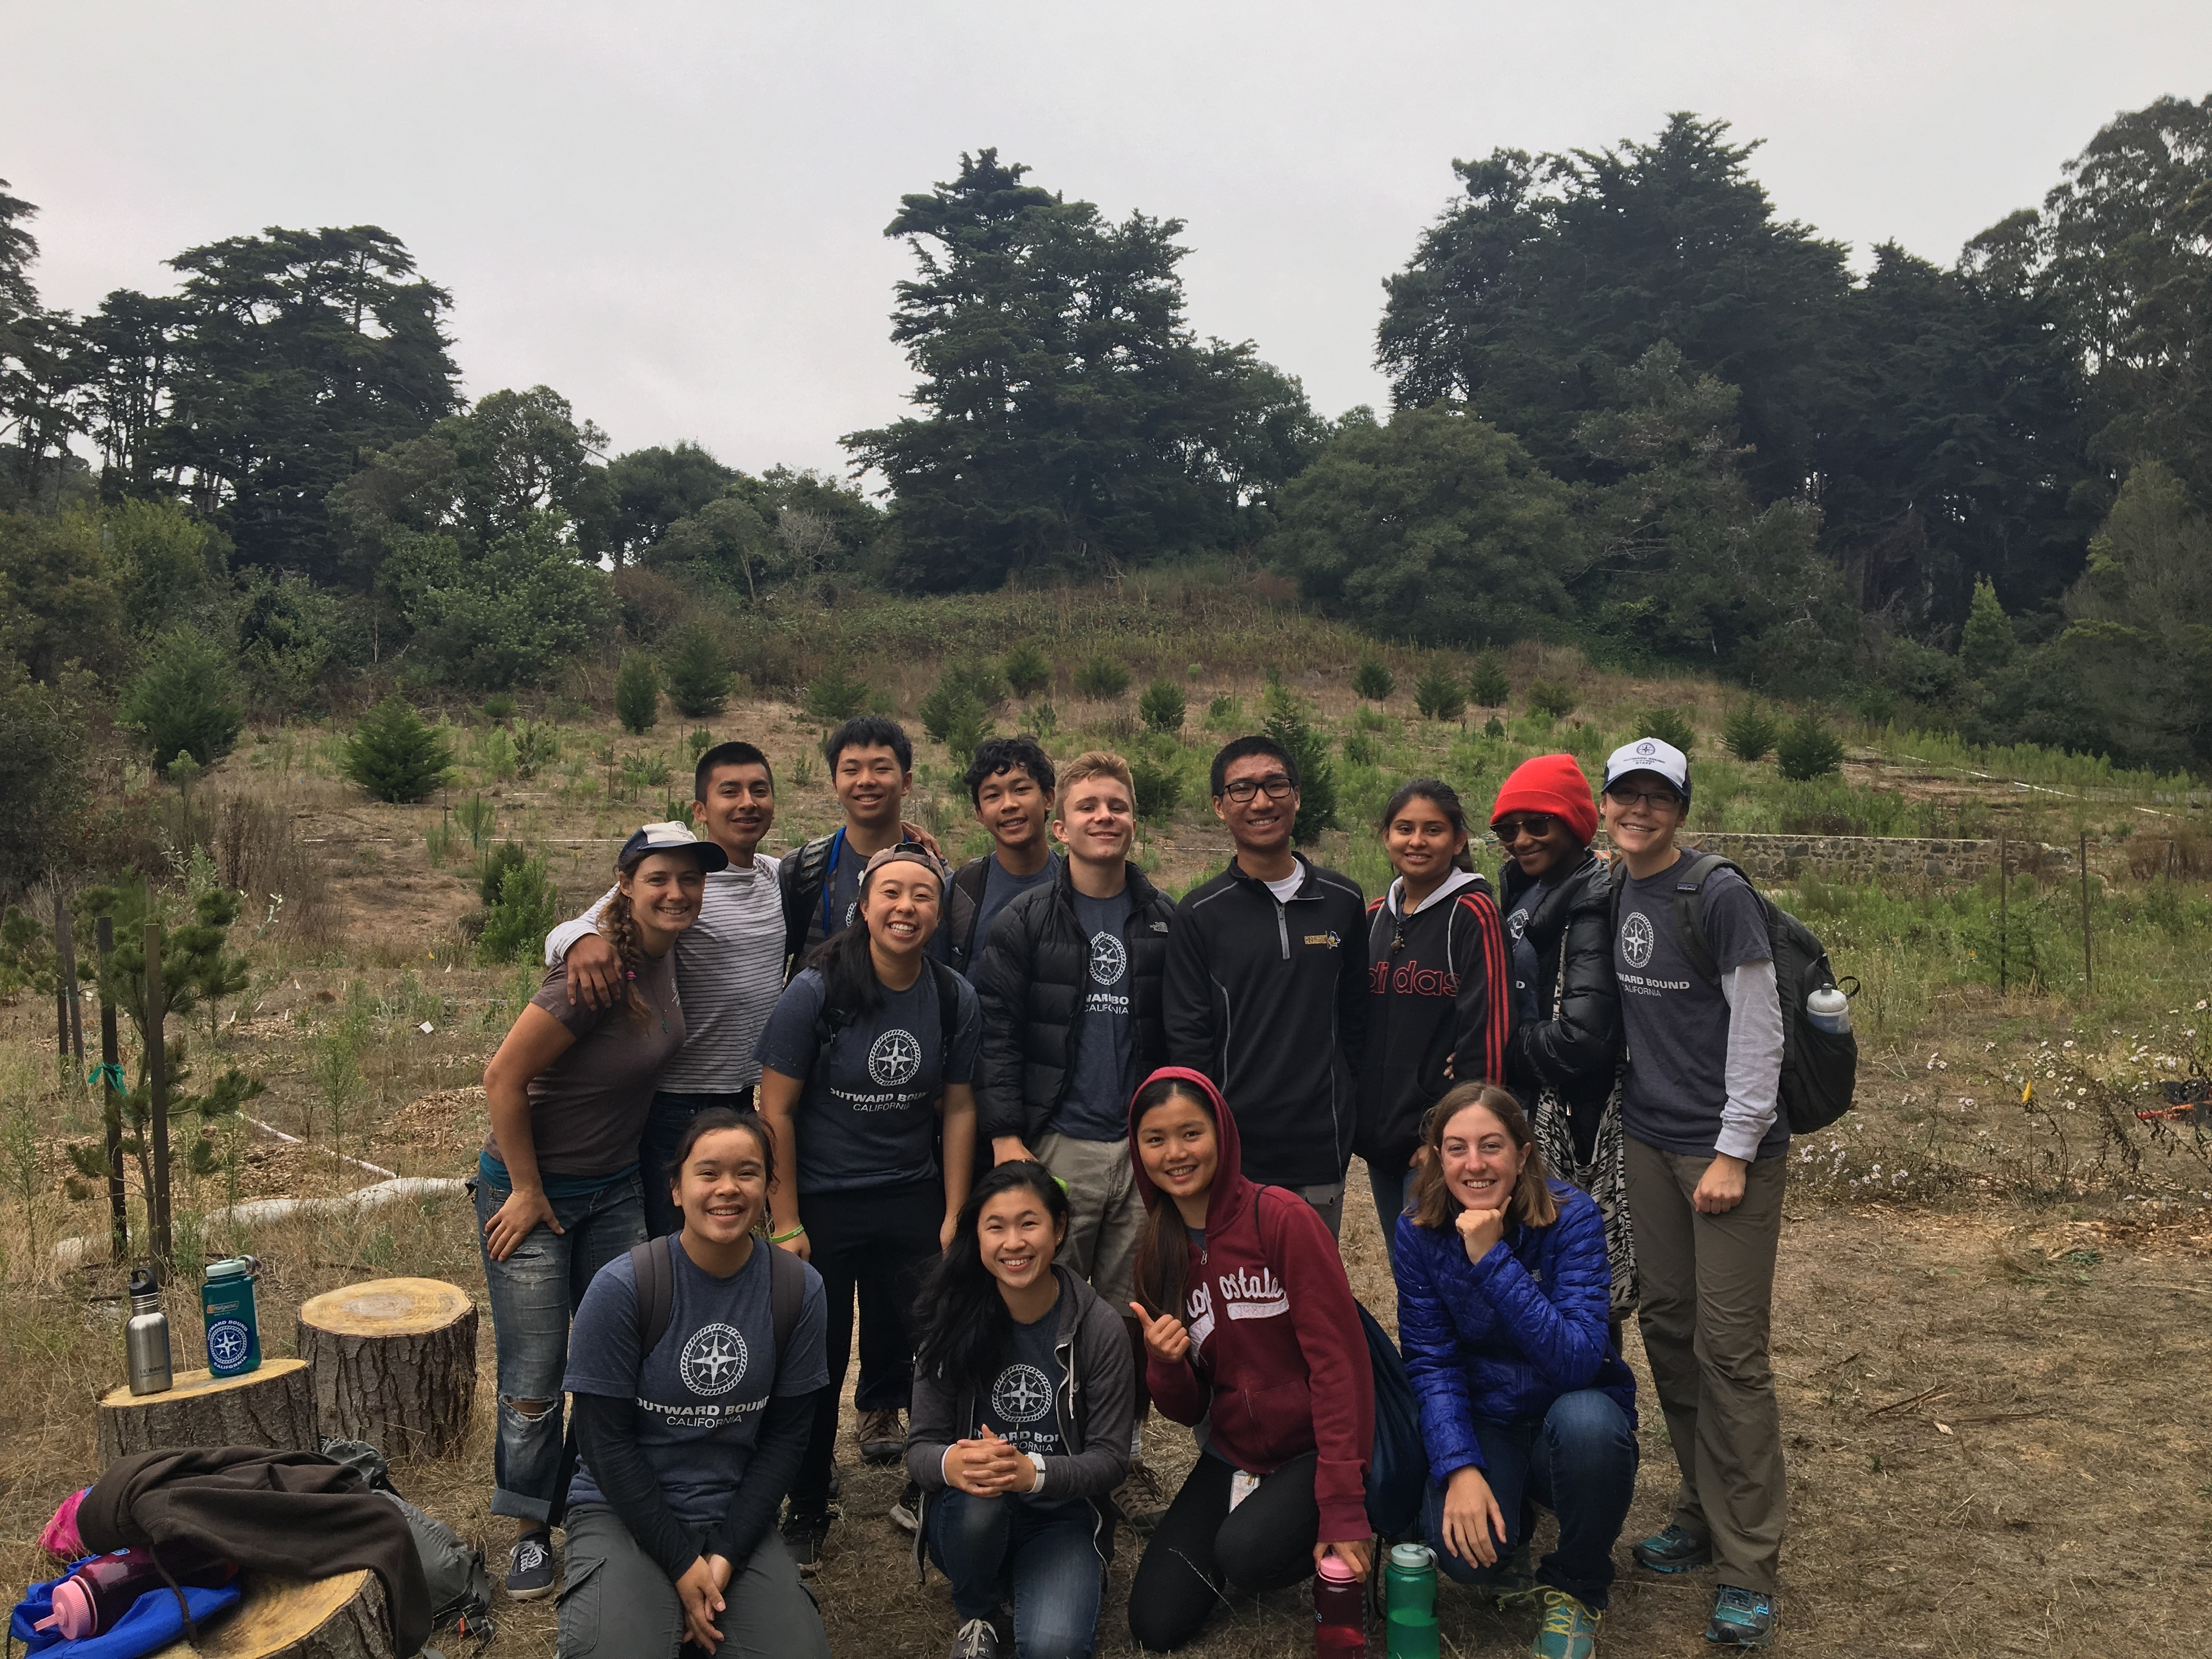 Bay Area high school students (rising sophomores, juniors, and seniors) who  want to continue to develop their leadership skills and gain service  experience.